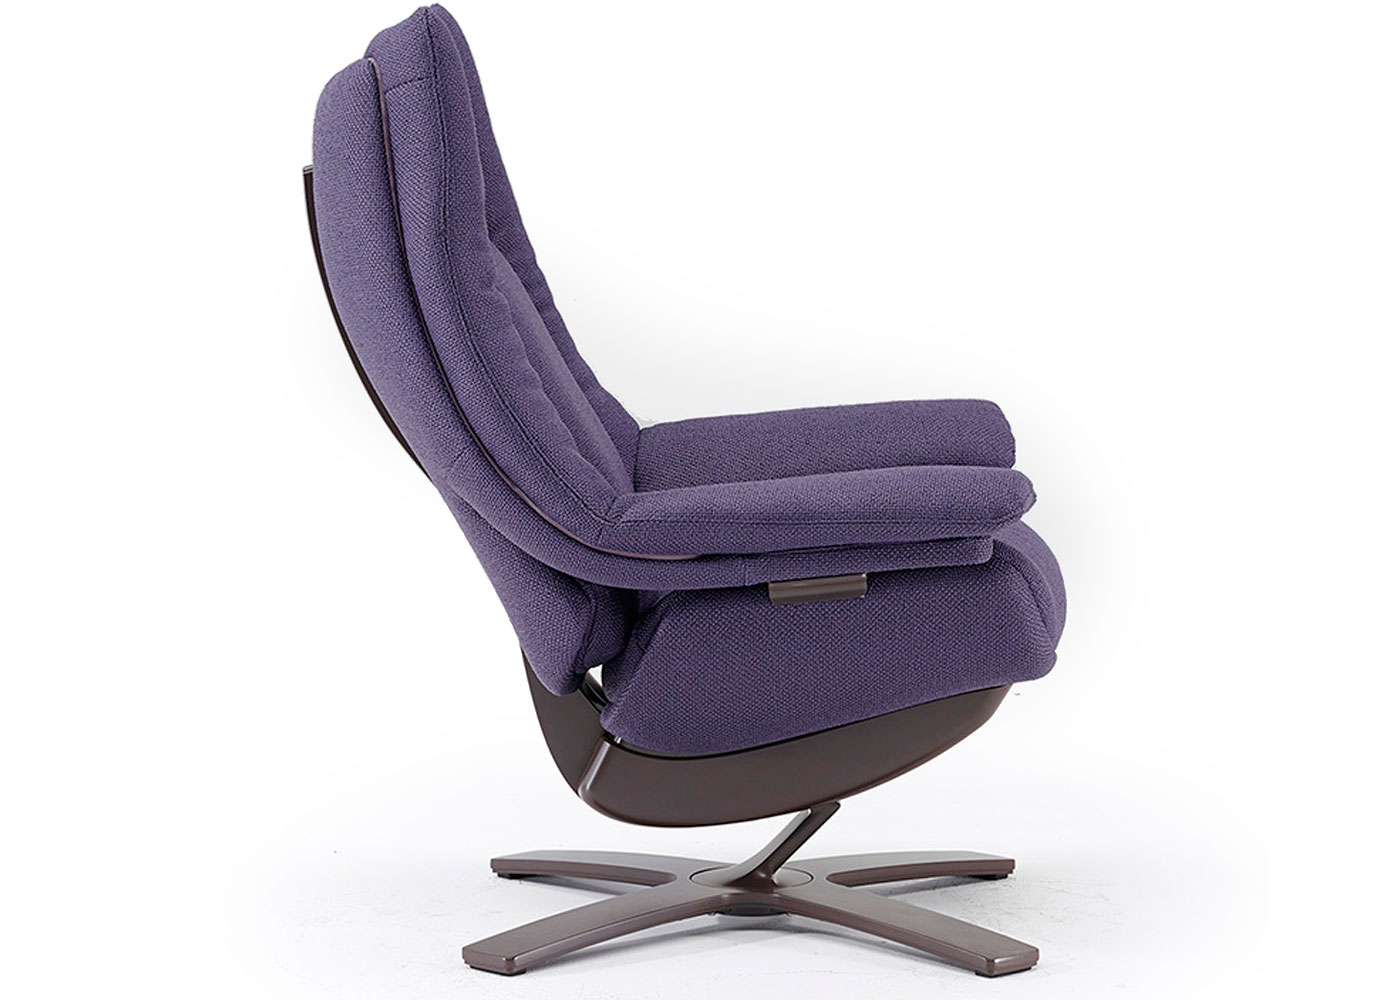 natuzzi revive chair big rocking in texas re vive suit midfurn furniture superstore